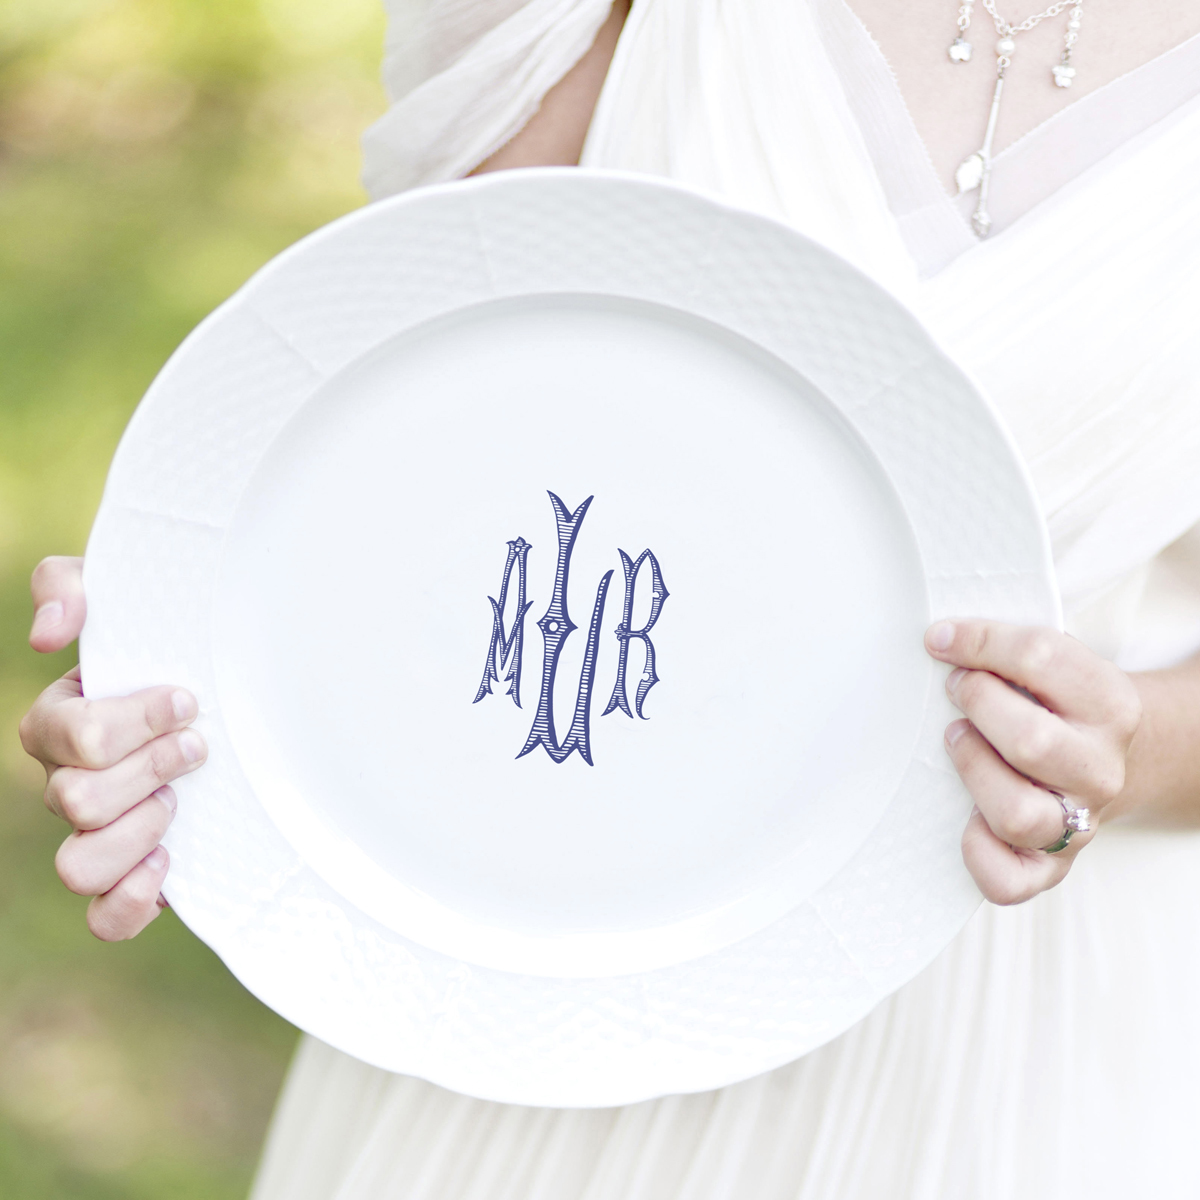 Dinnerware Tablescapes China Wedding Registry Ideas Monogrammed Unique Dishes Custom Tablesetting Sasha Nicholas Northern Virginia Lieb Photographic Southern Blue Blush Weave Dinnerplate